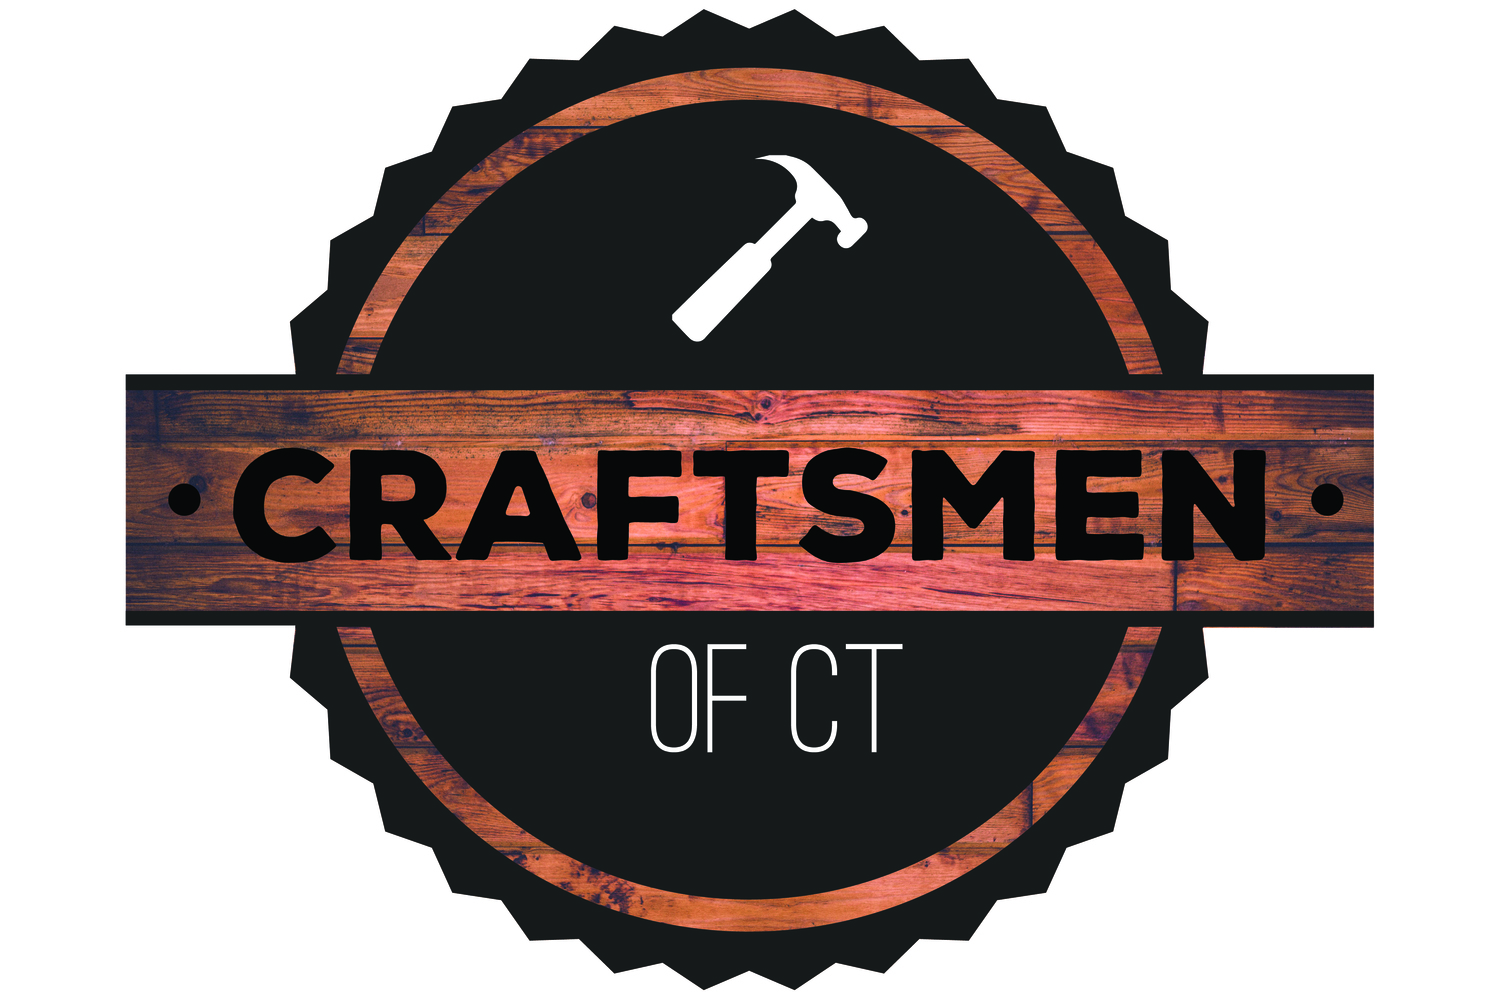 Craftsmen of CT